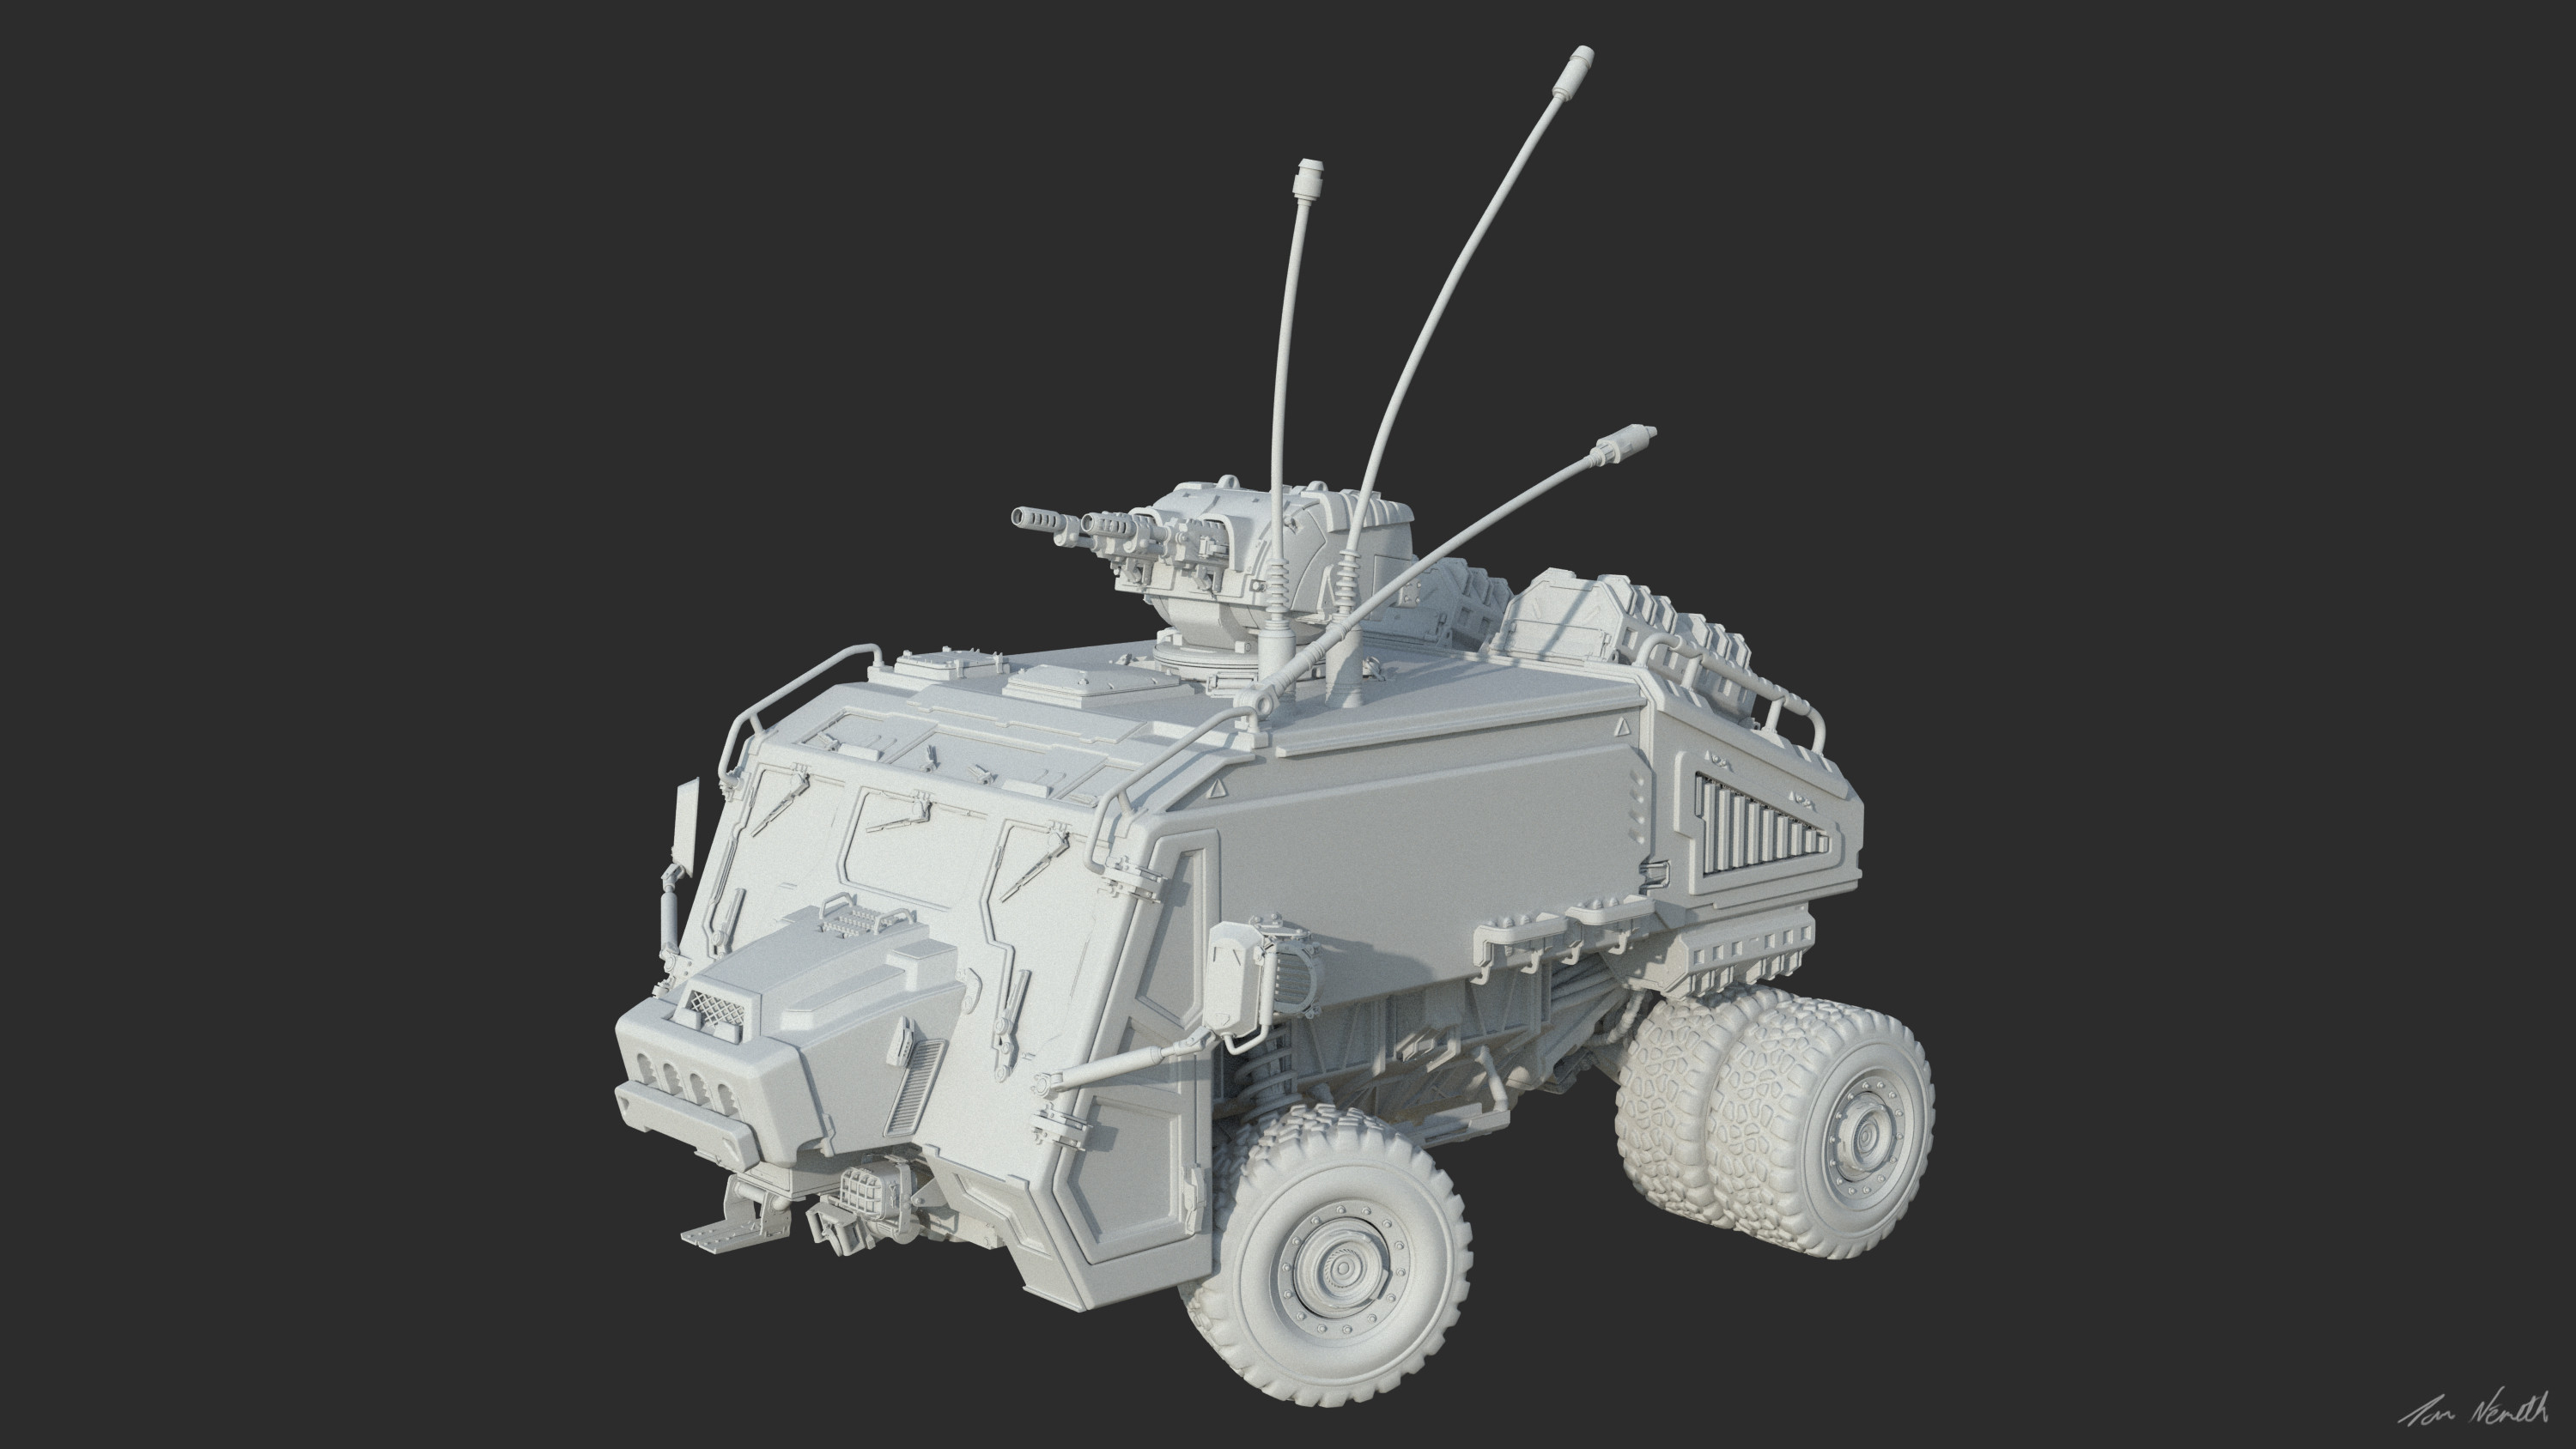 Rover wip - concept by Toph Gorham